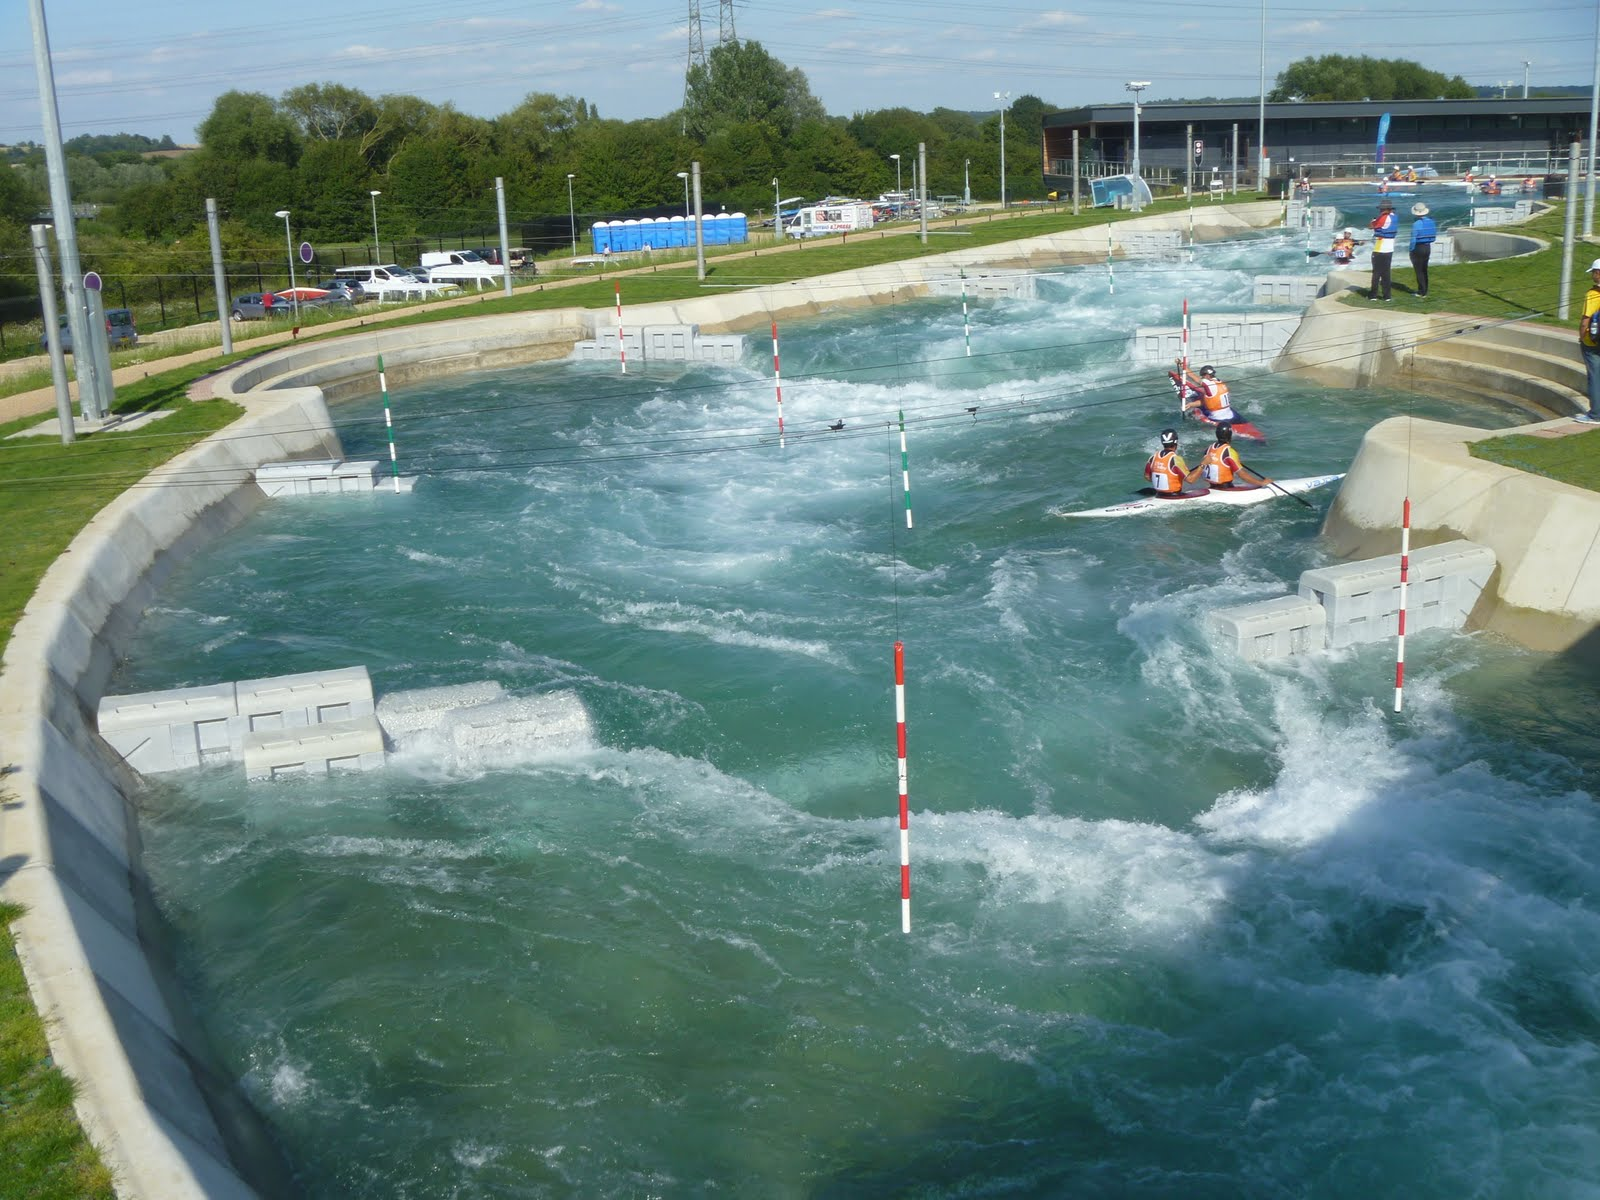 UK Olympic kayaking man-made venue